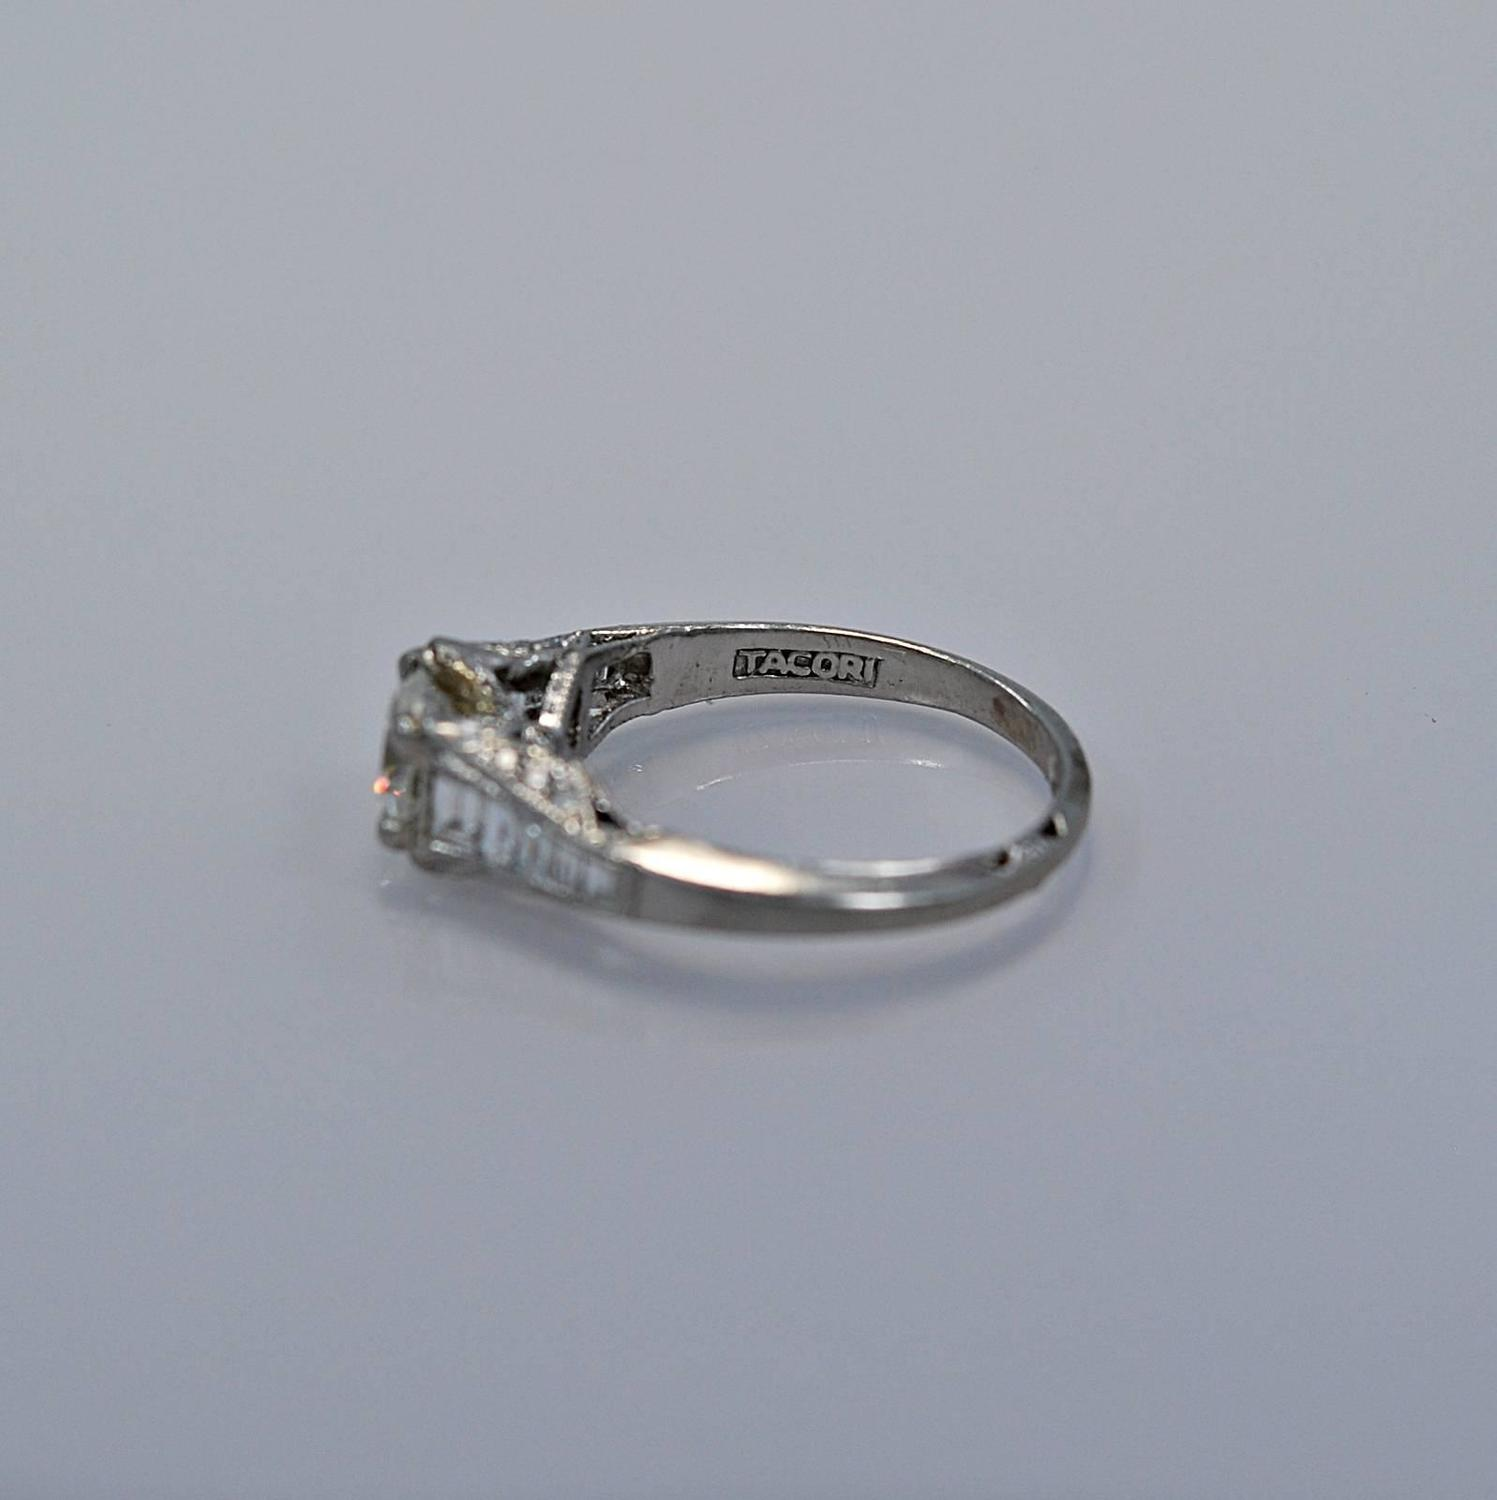 Sensational Tacori Diamond Platinum Engagement Ring For Sale at 1stdibs